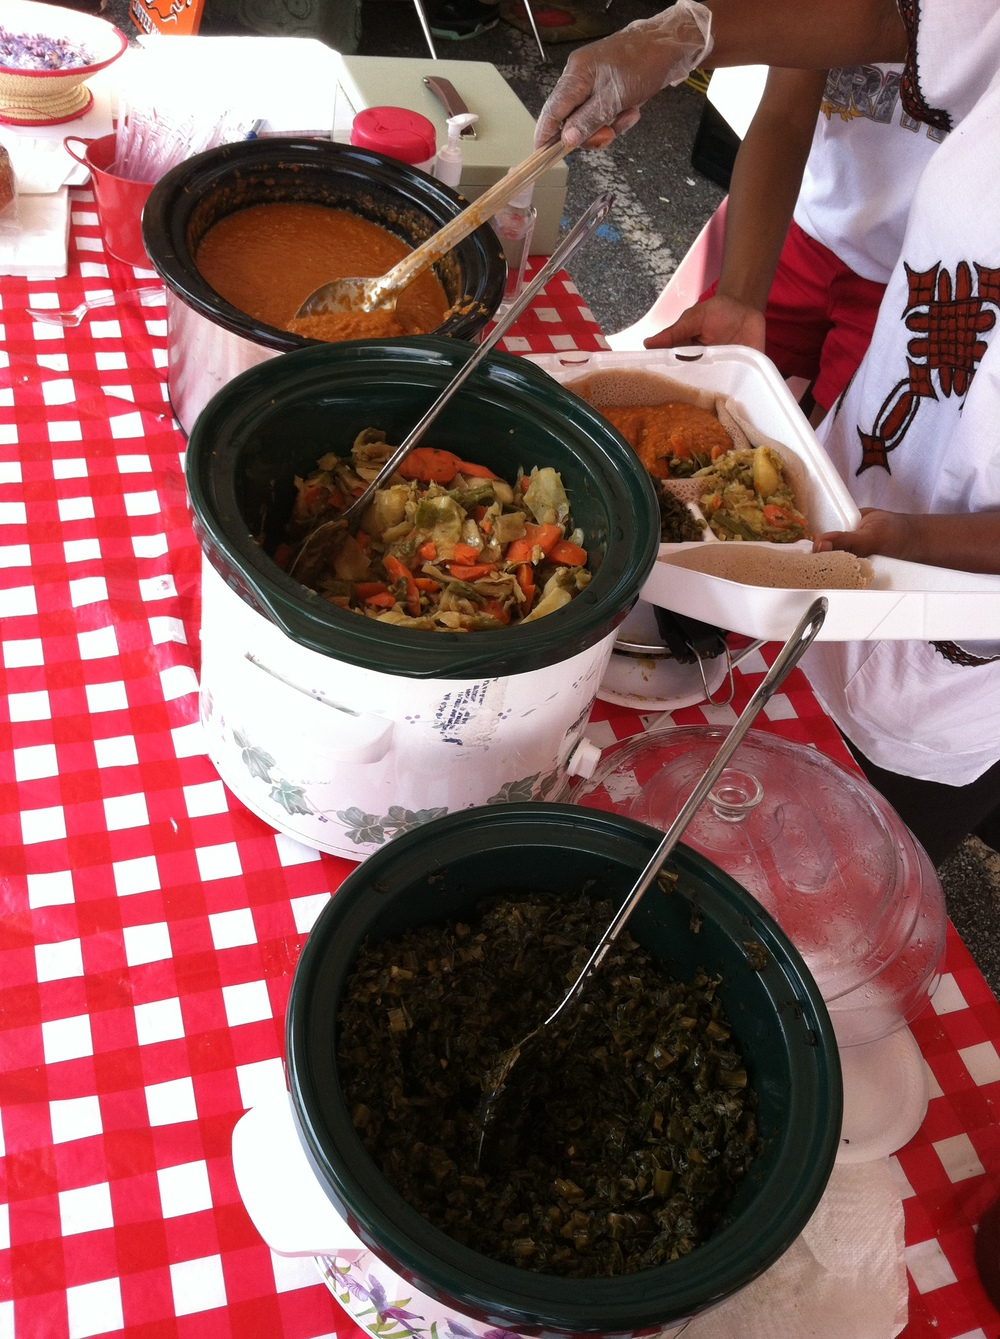 Photo of homemade Ethiopian food at West Broad Market by Josh Skinner